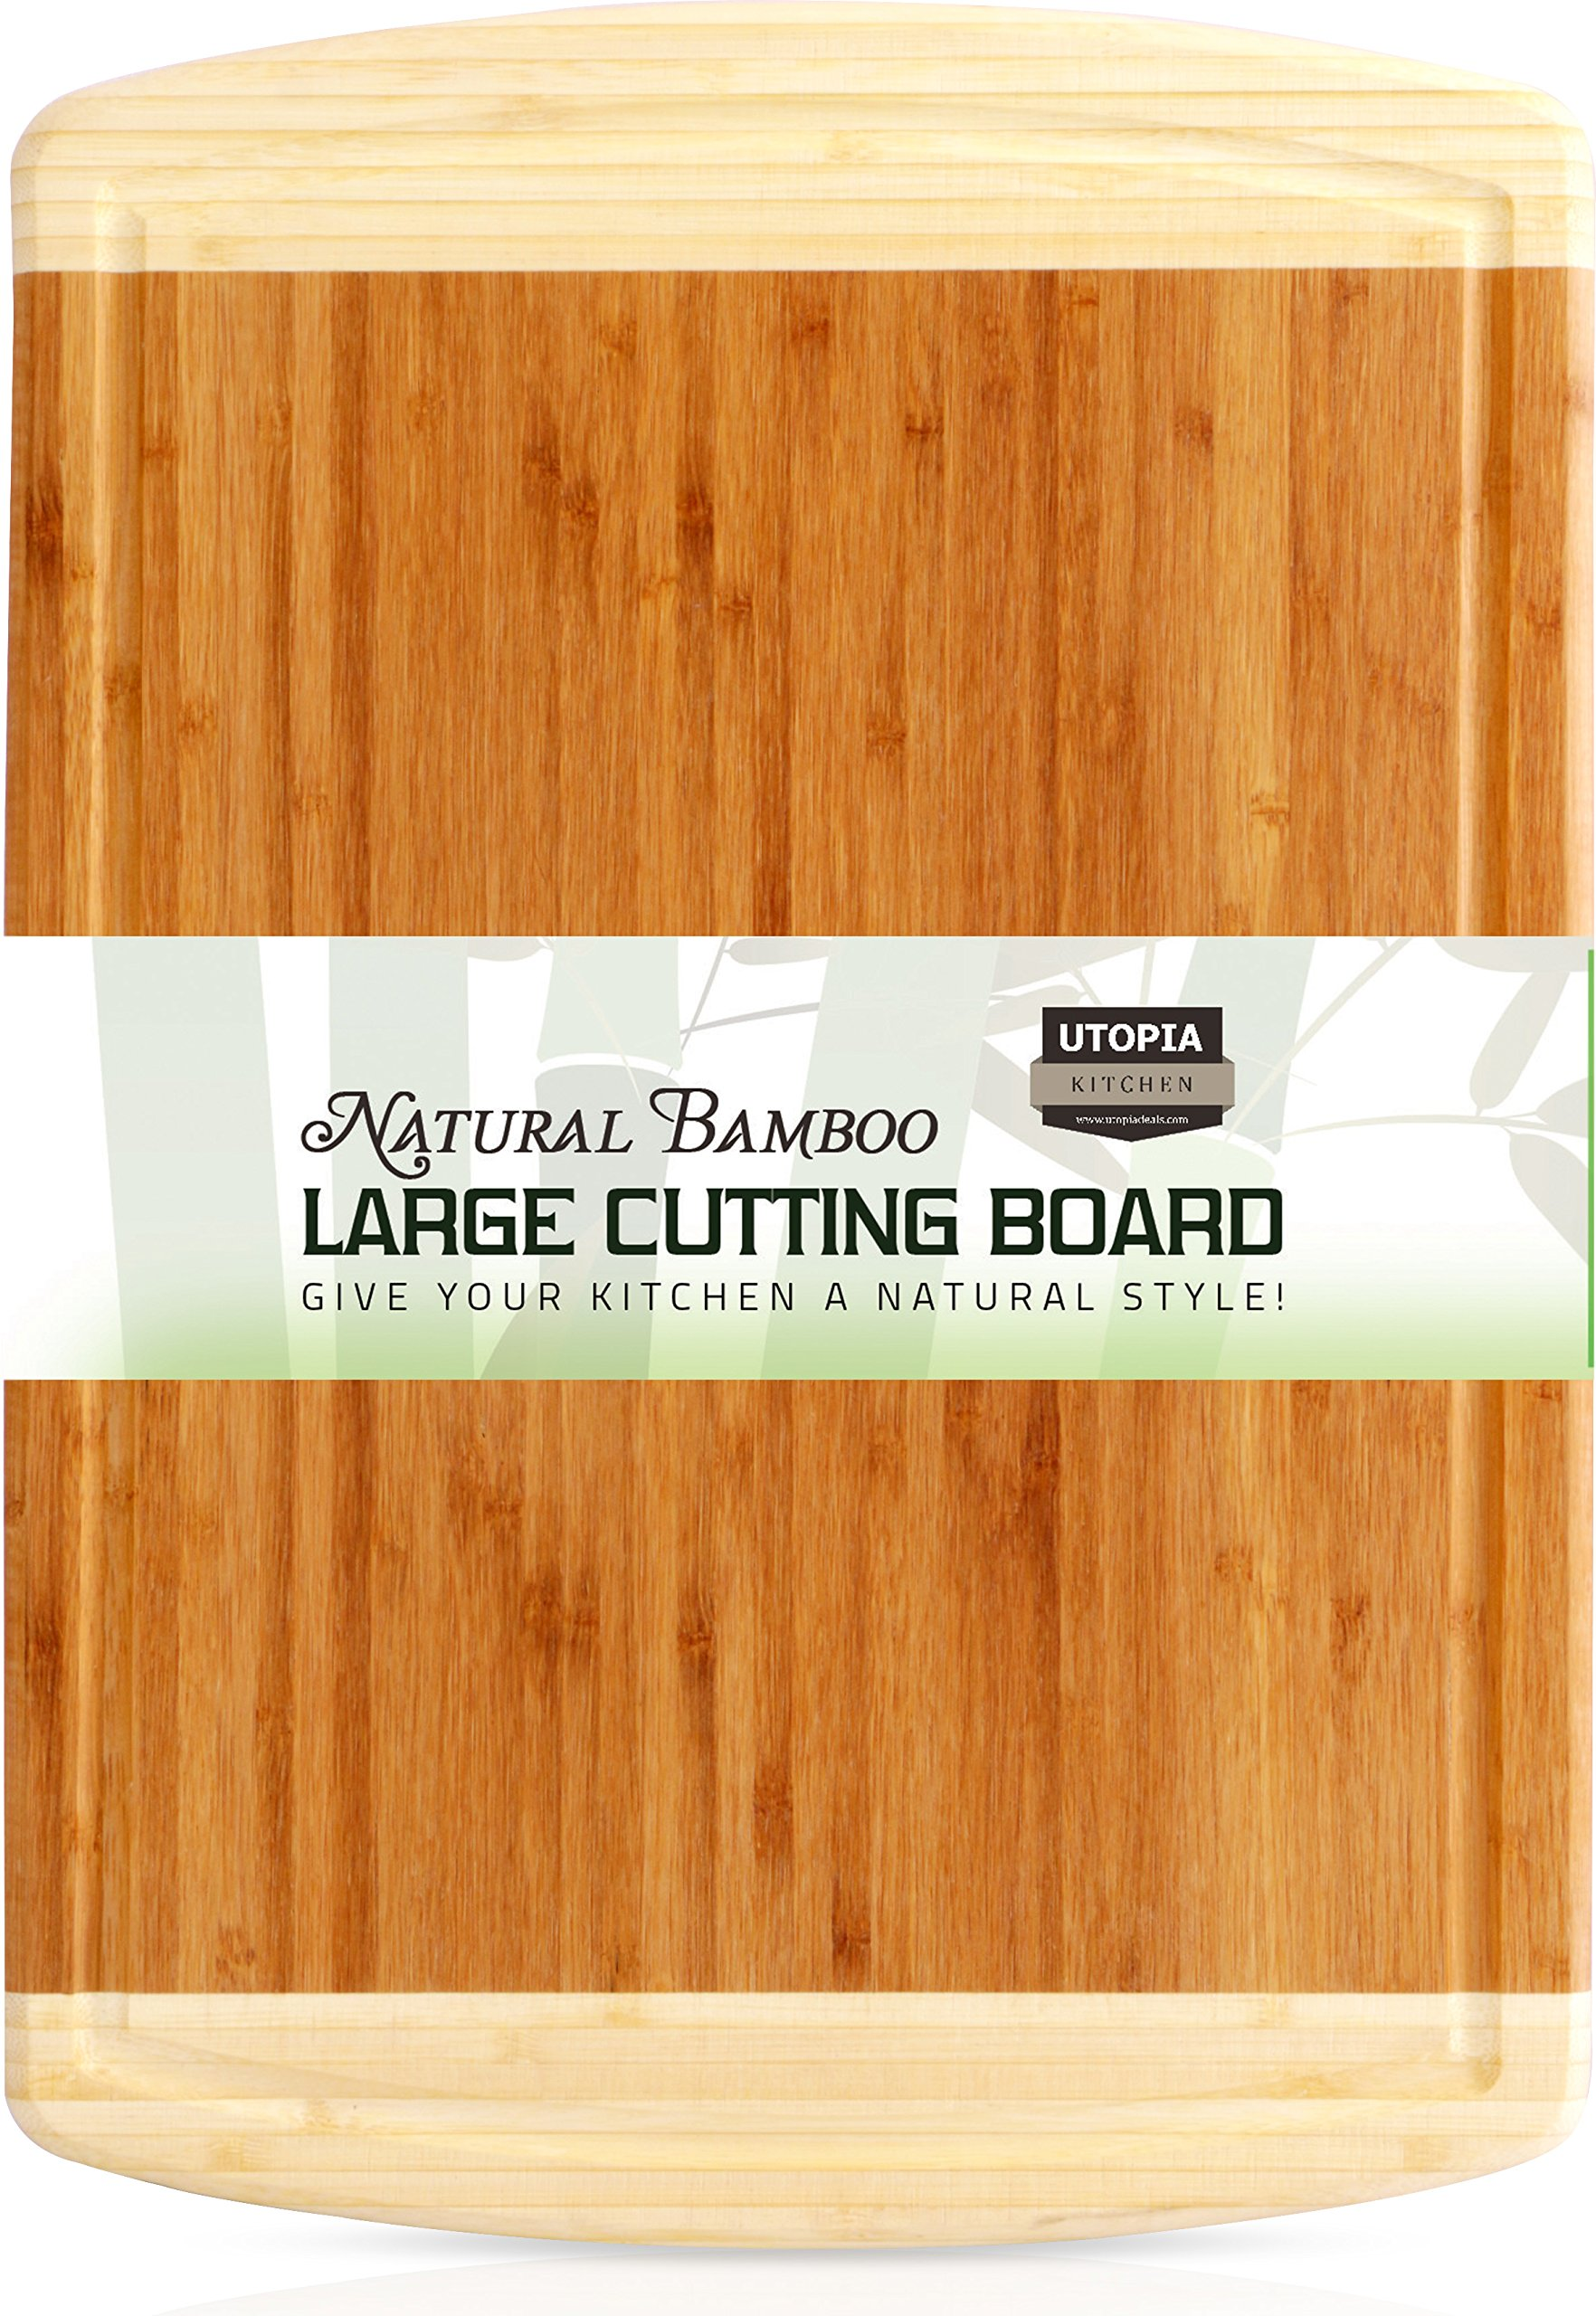 Utopia Kitchen Bamboo Cutting Board Large Bamboo Cutting Board for Chicken, Meat, and Vegetables